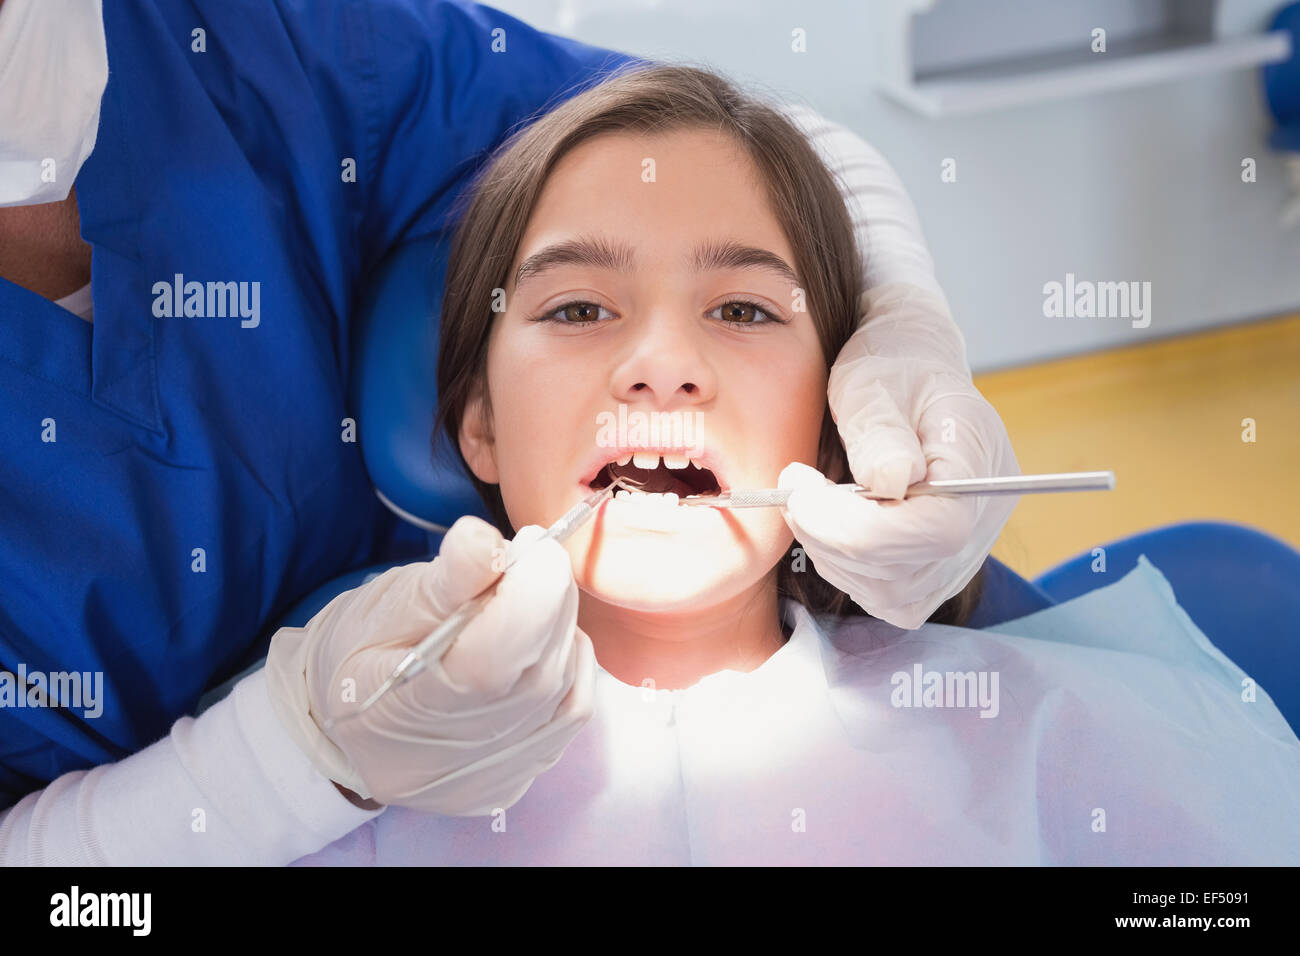 Scared Young Patient In Dental Examination